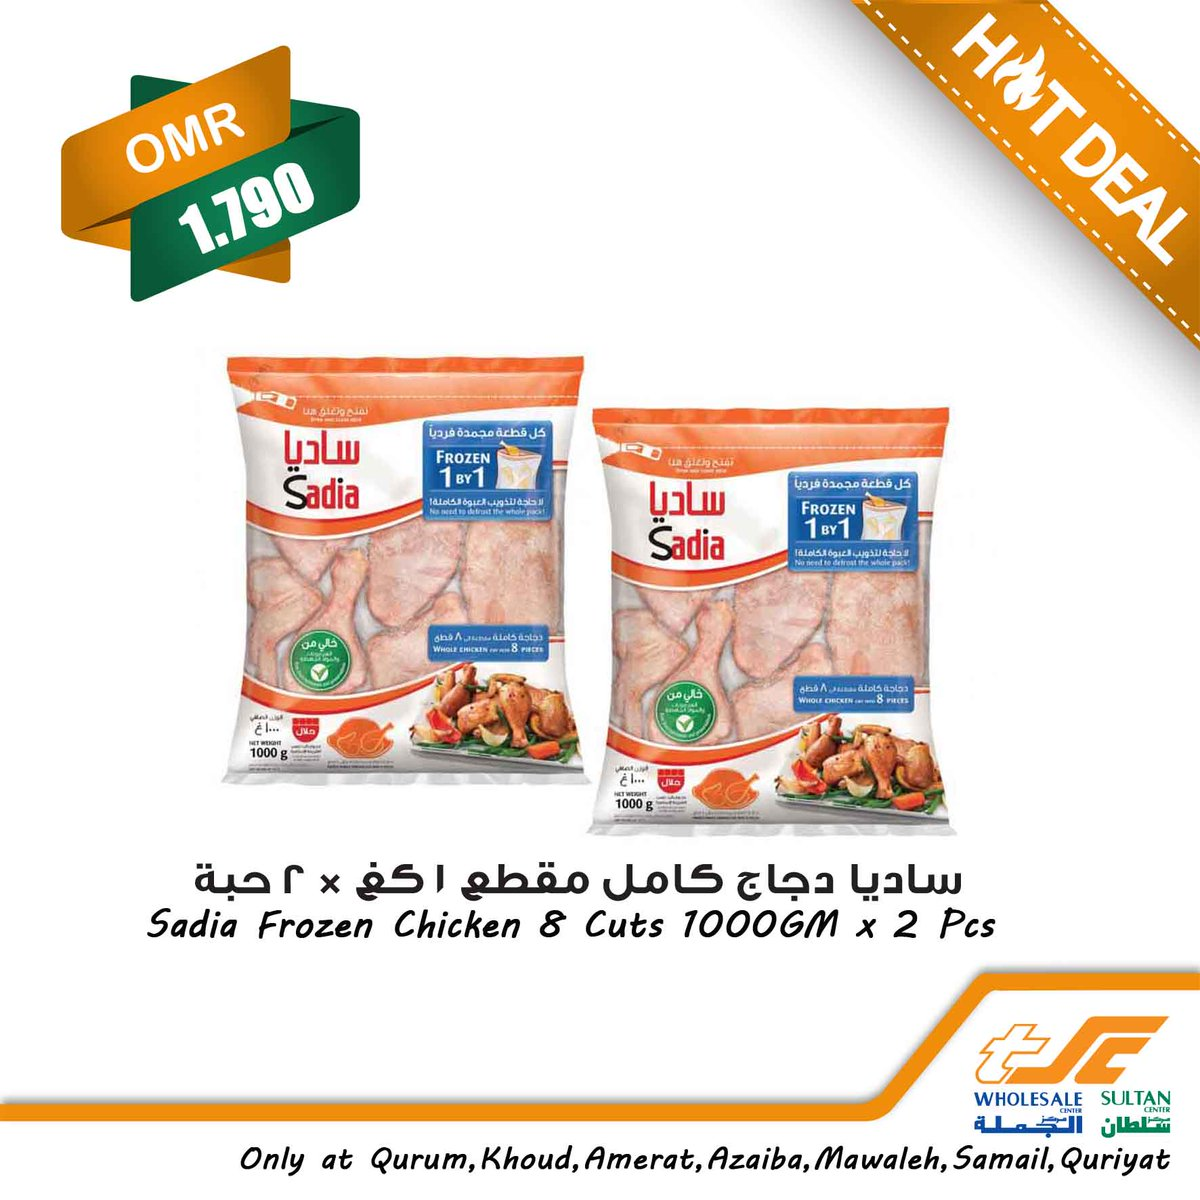 Sultan Center Oman on Twitter: